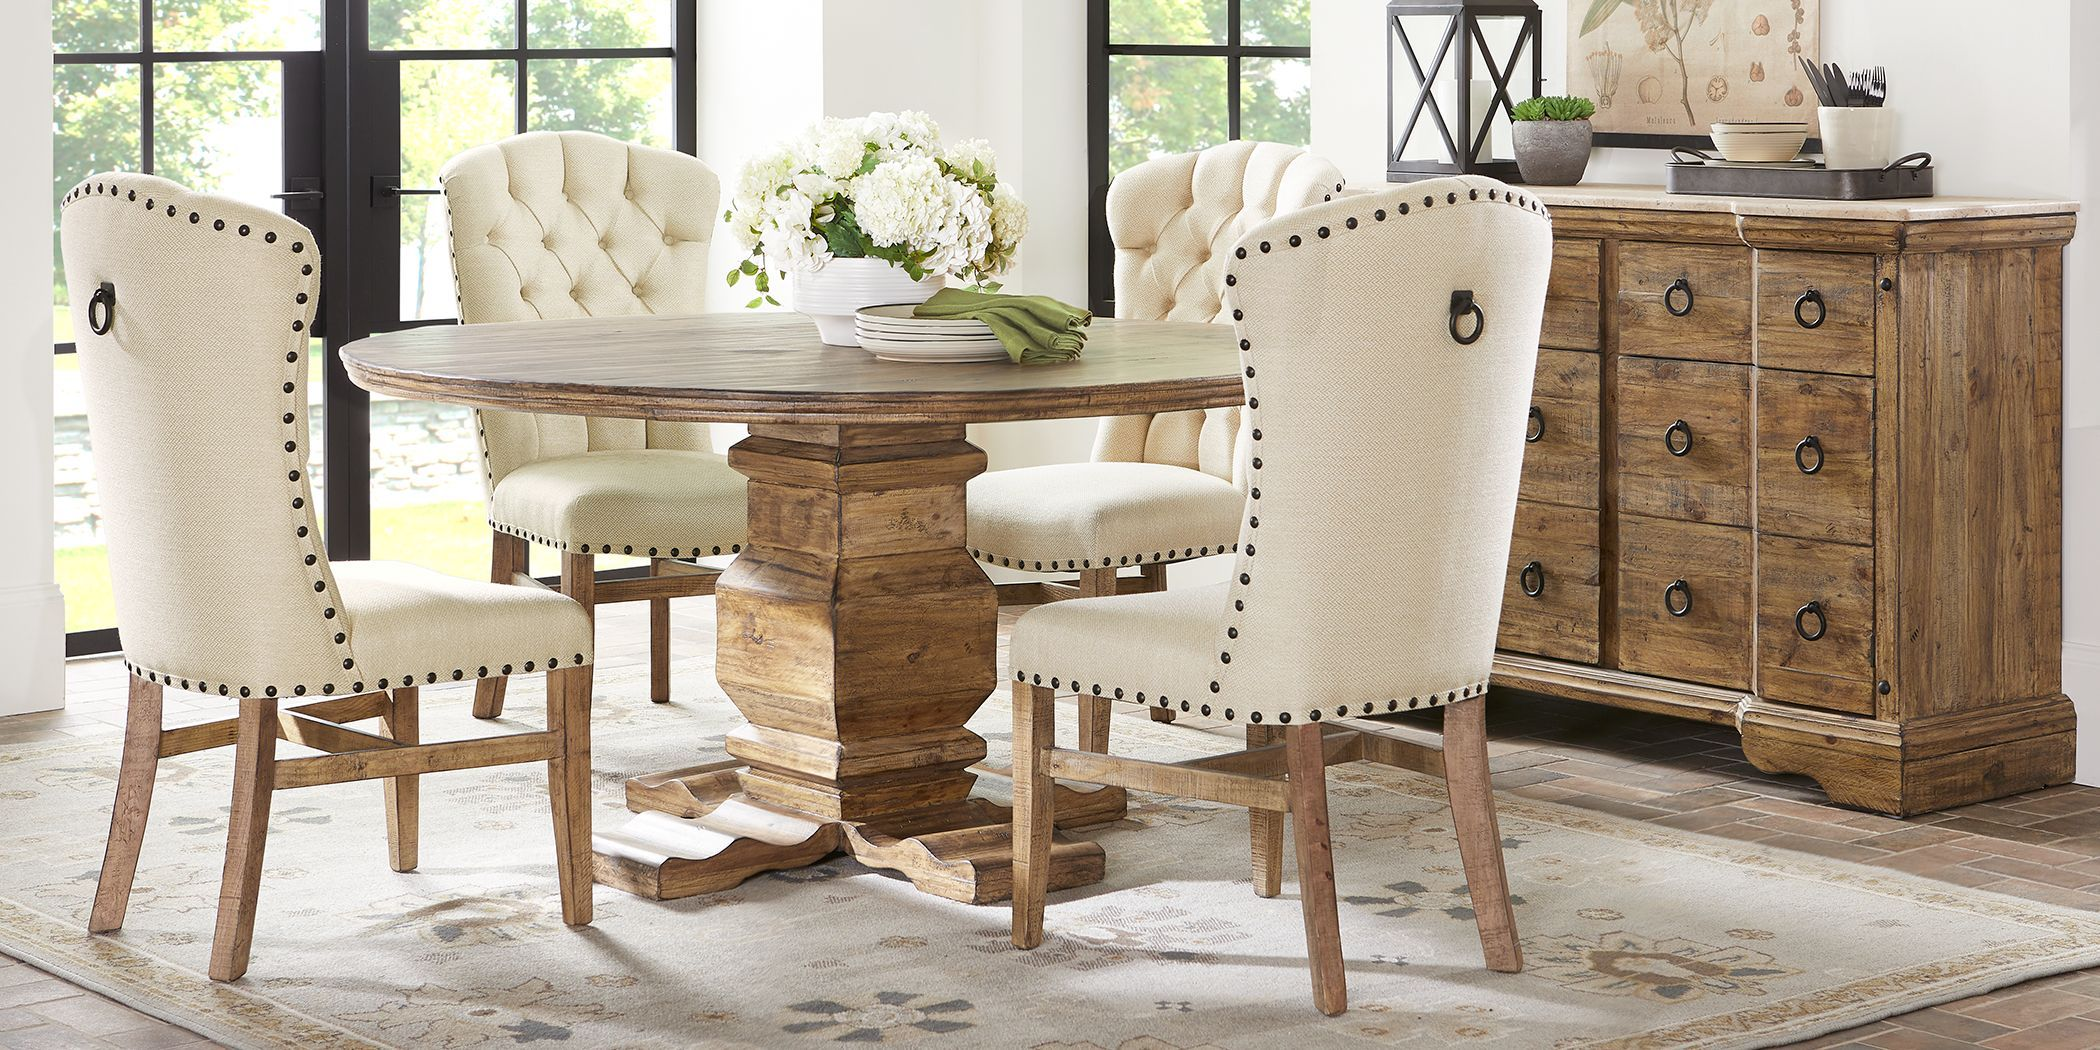 Canyon City Tan 5 Pc Dining Room Rustic Dining Room Table Dining Room Table Set Tan Dining Rooms